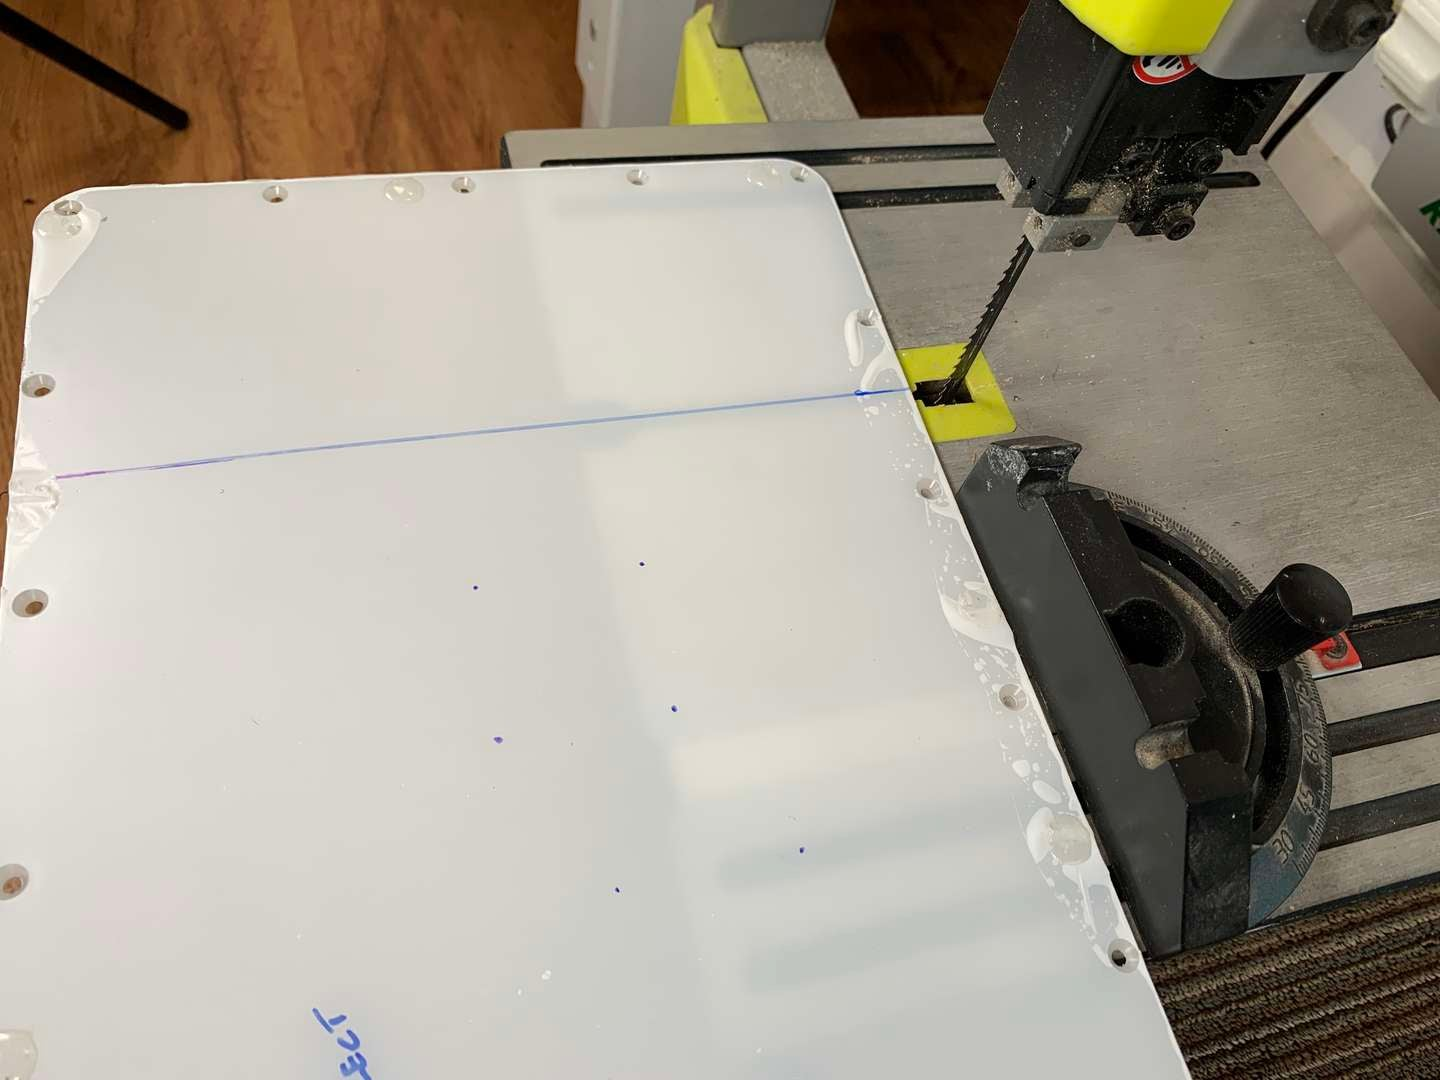 Cutting the AdventurePi panel with a bandsaw